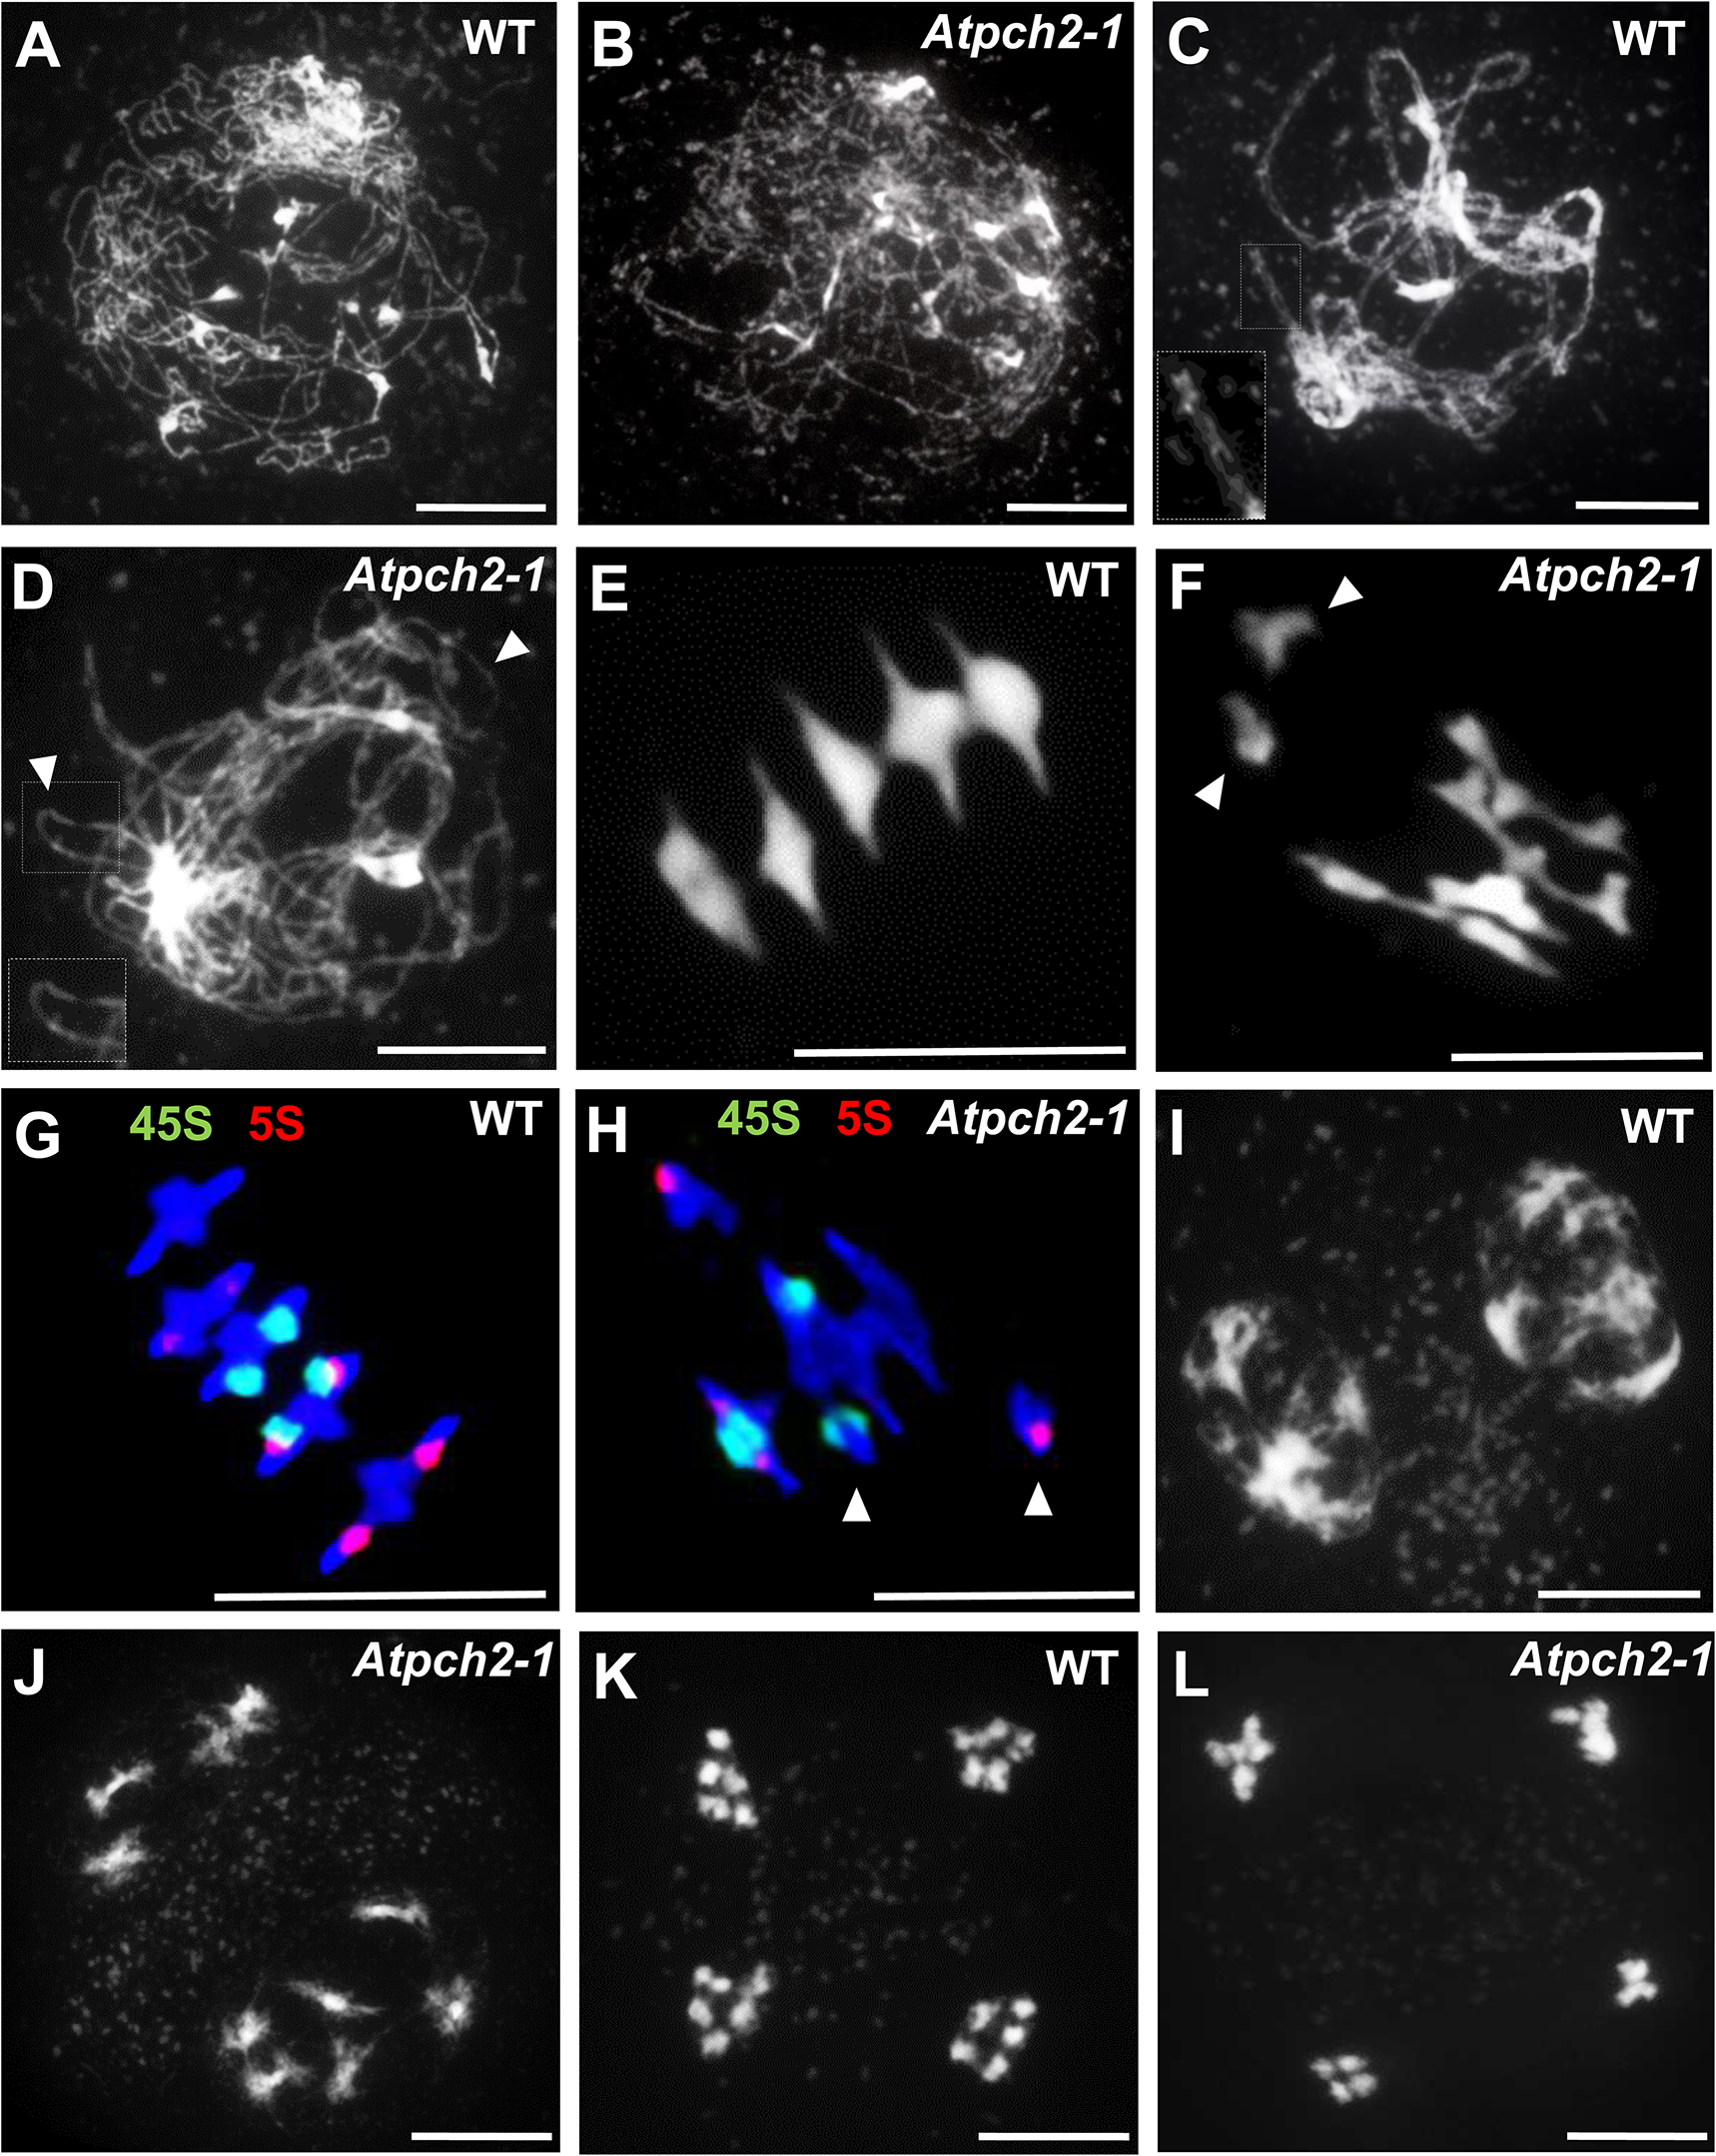 Meiotic stages from wild type Arabidopsis and <i>Atpch2-1</i> pollen mother cells.